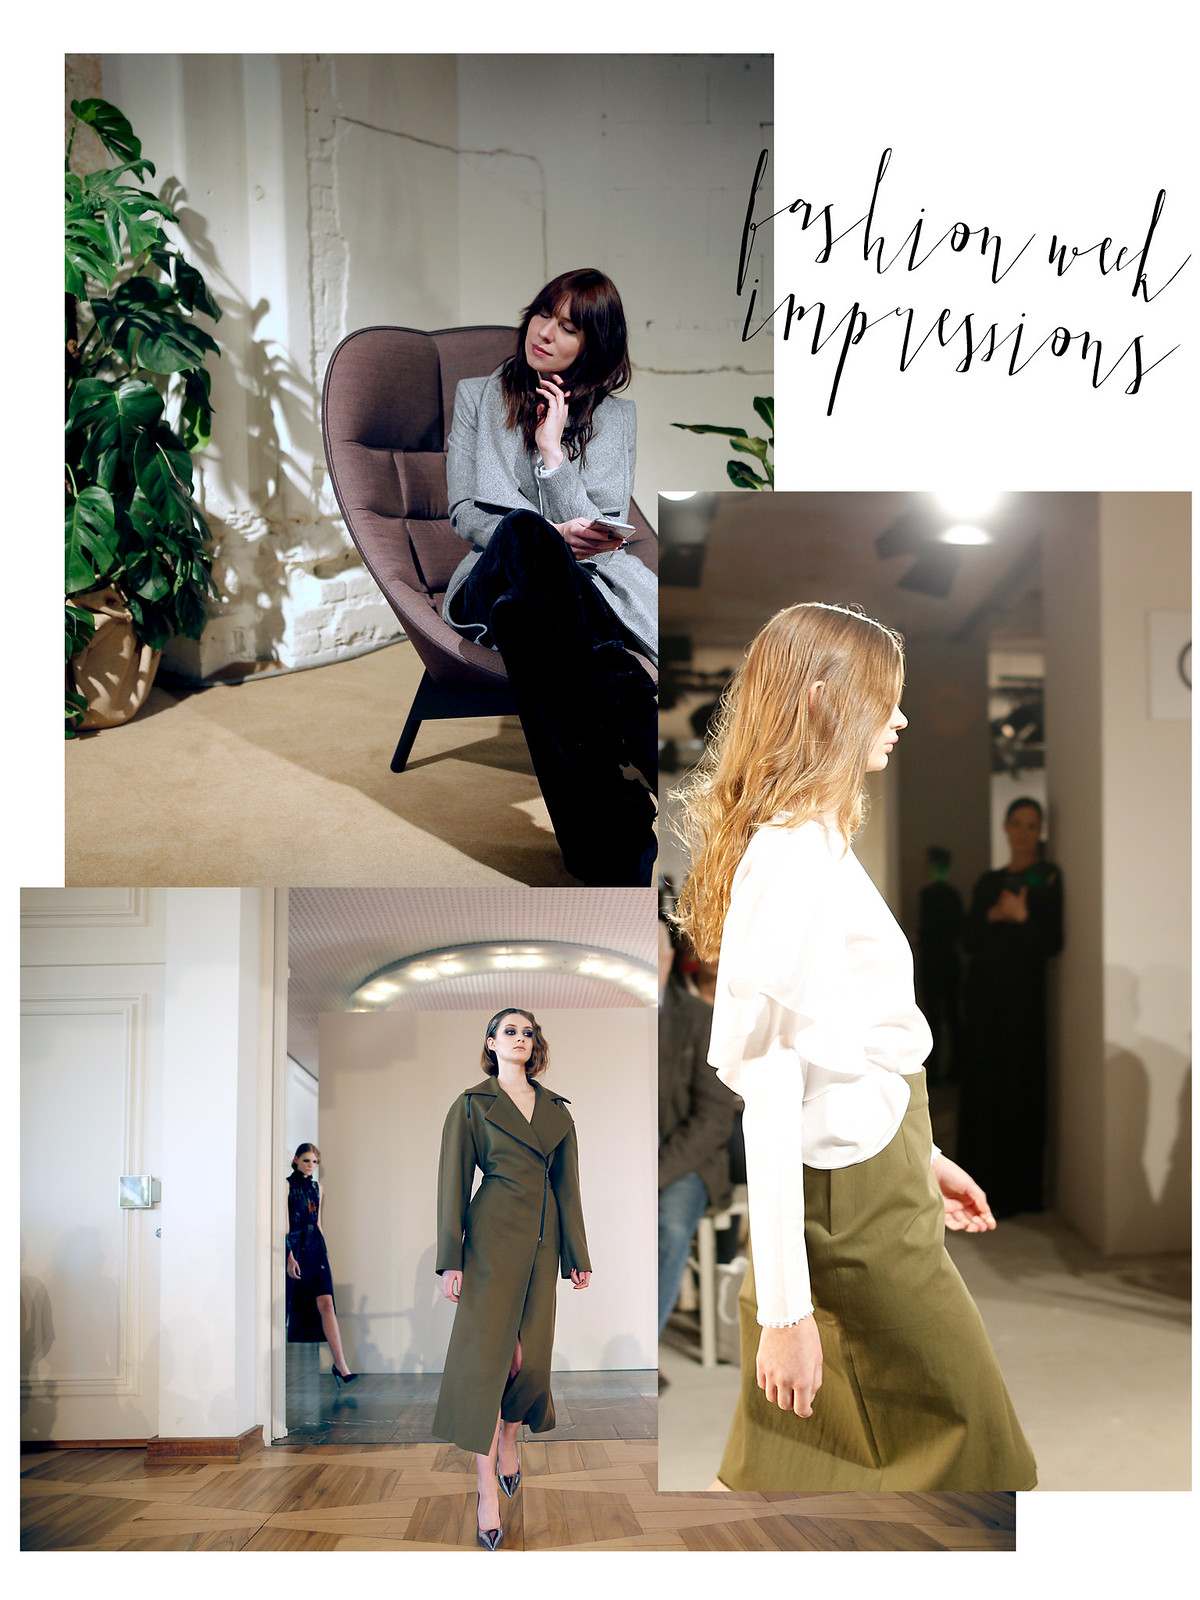 fashion week mint&berry fashionblogger mbwf berliner modewoche mbfw runway modenschau impressionen outfit ootd wiw styling lookbook grey coat winter a/w 2017 cats & dogs fashionblog ricarda schernus fashionblogger modeblogger düsseldorf berlin 3